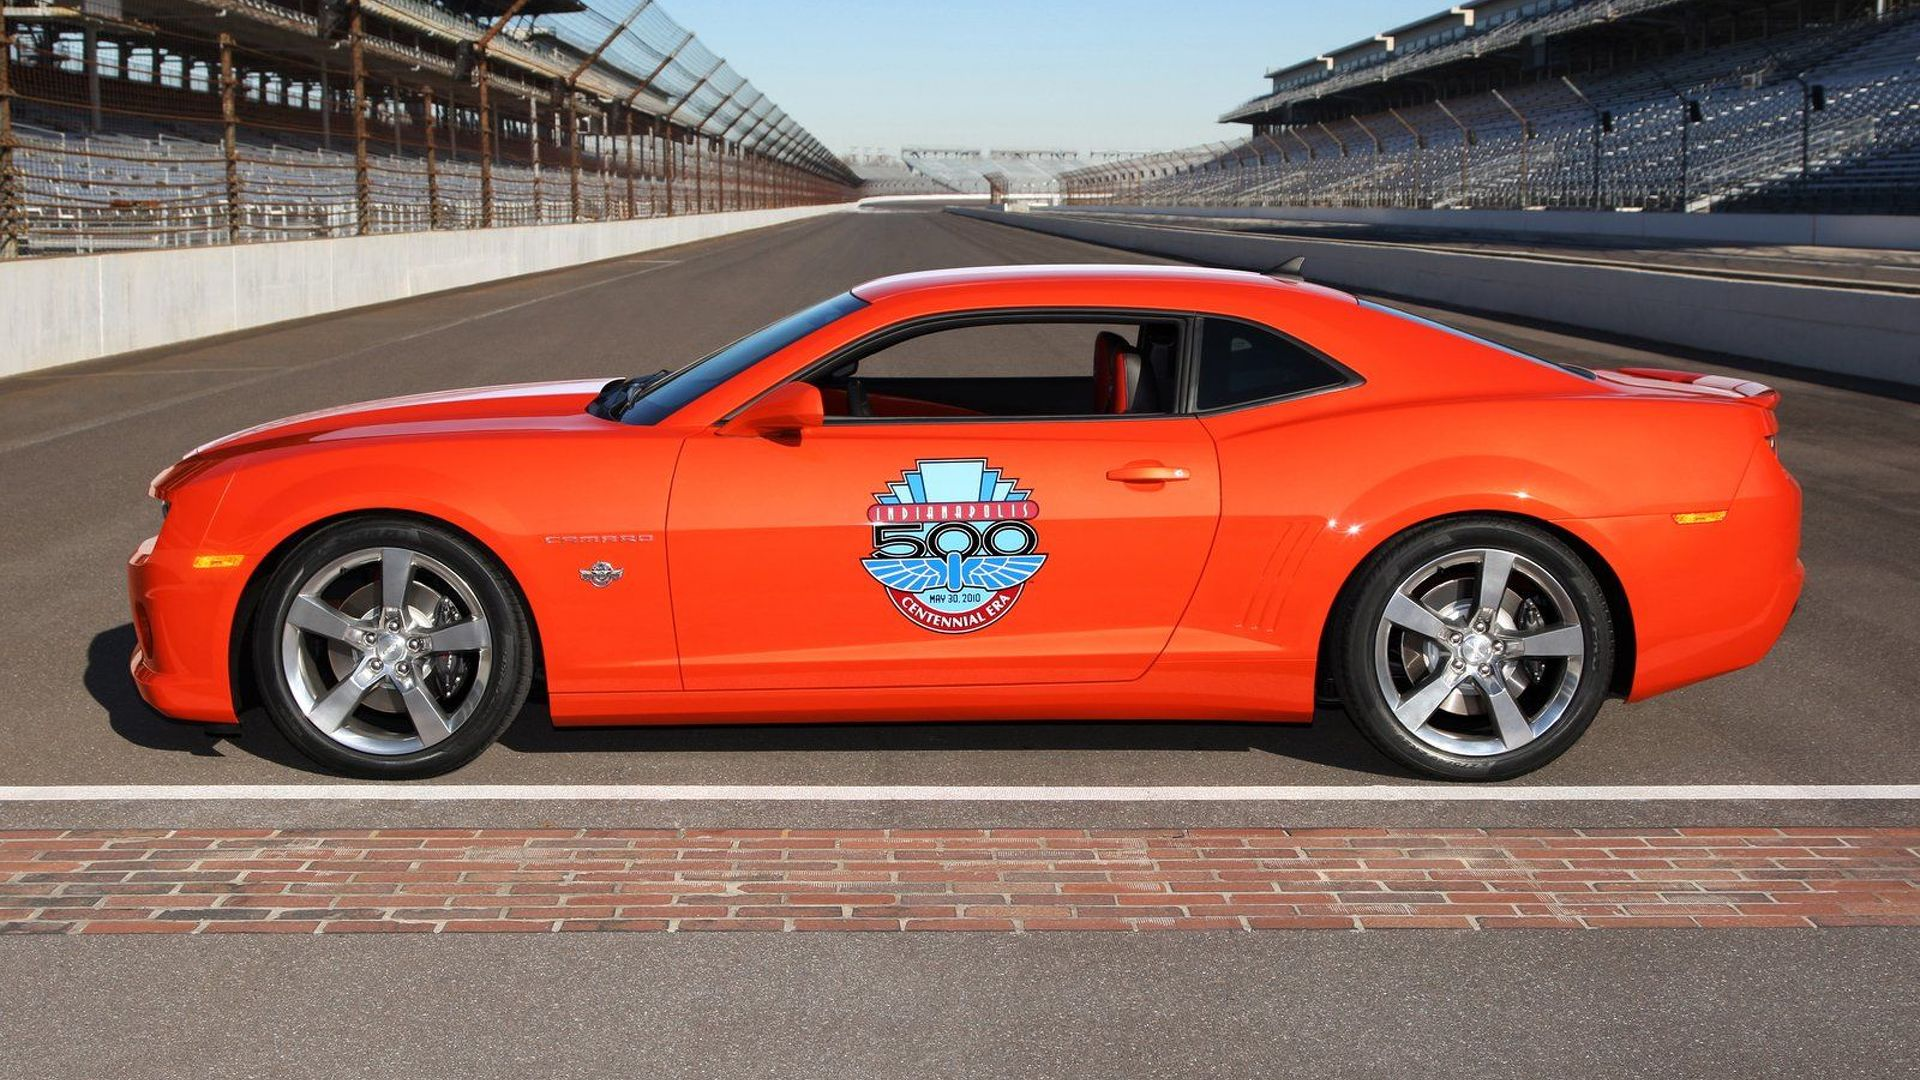 2010 Chevrolet Camaro Indianapolis 500 Pace Car Limited Edition Announced